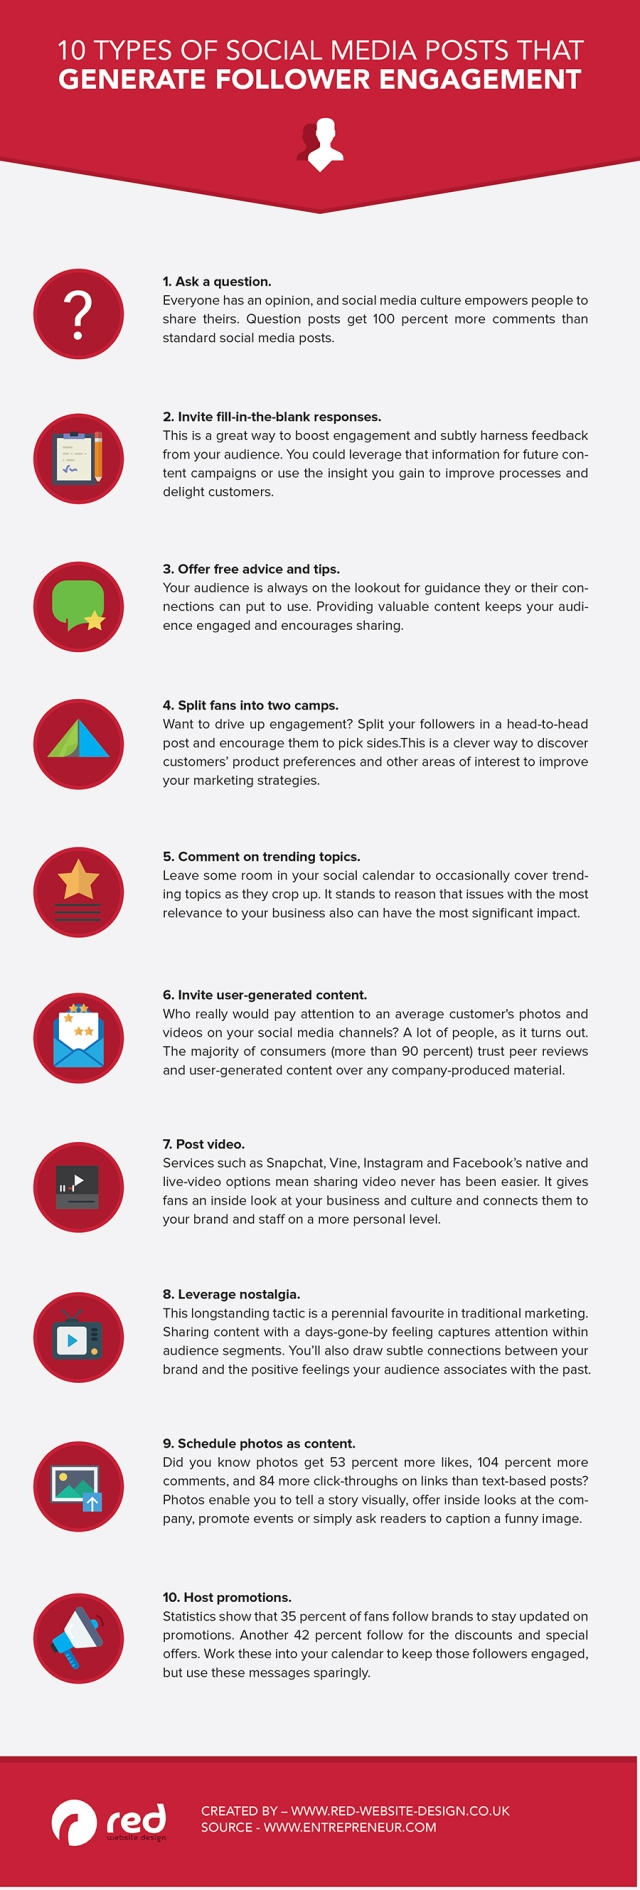 10 Types of Social Media Posts That Generate Engagement With Followers